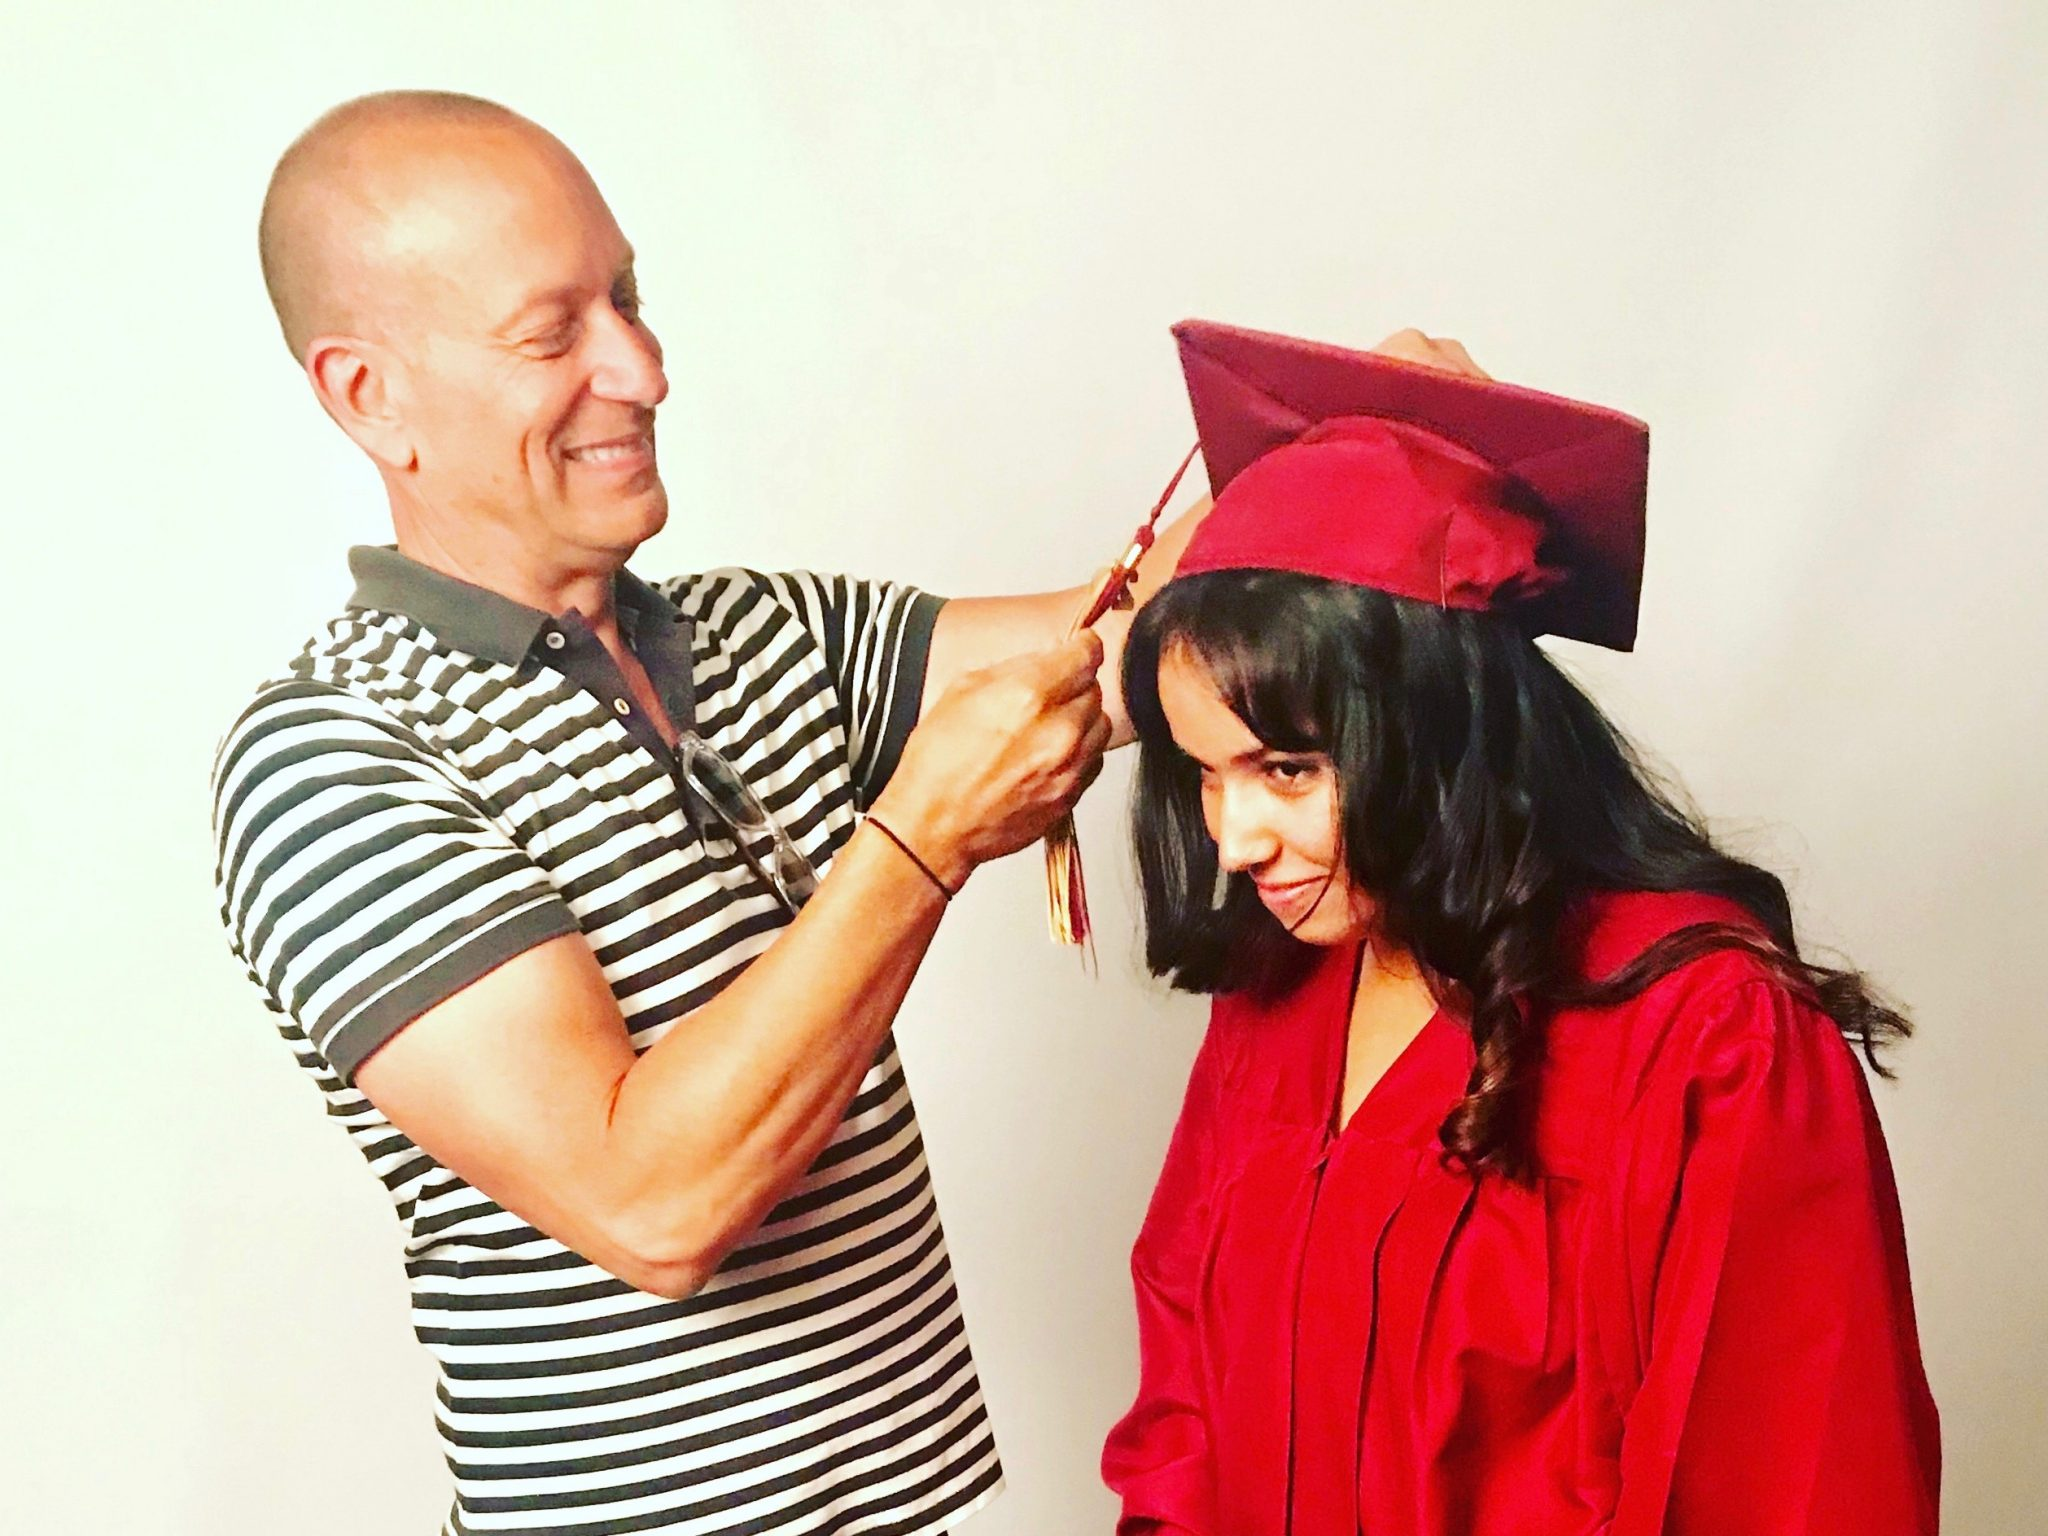 man helps daughter with graduation cap and robe